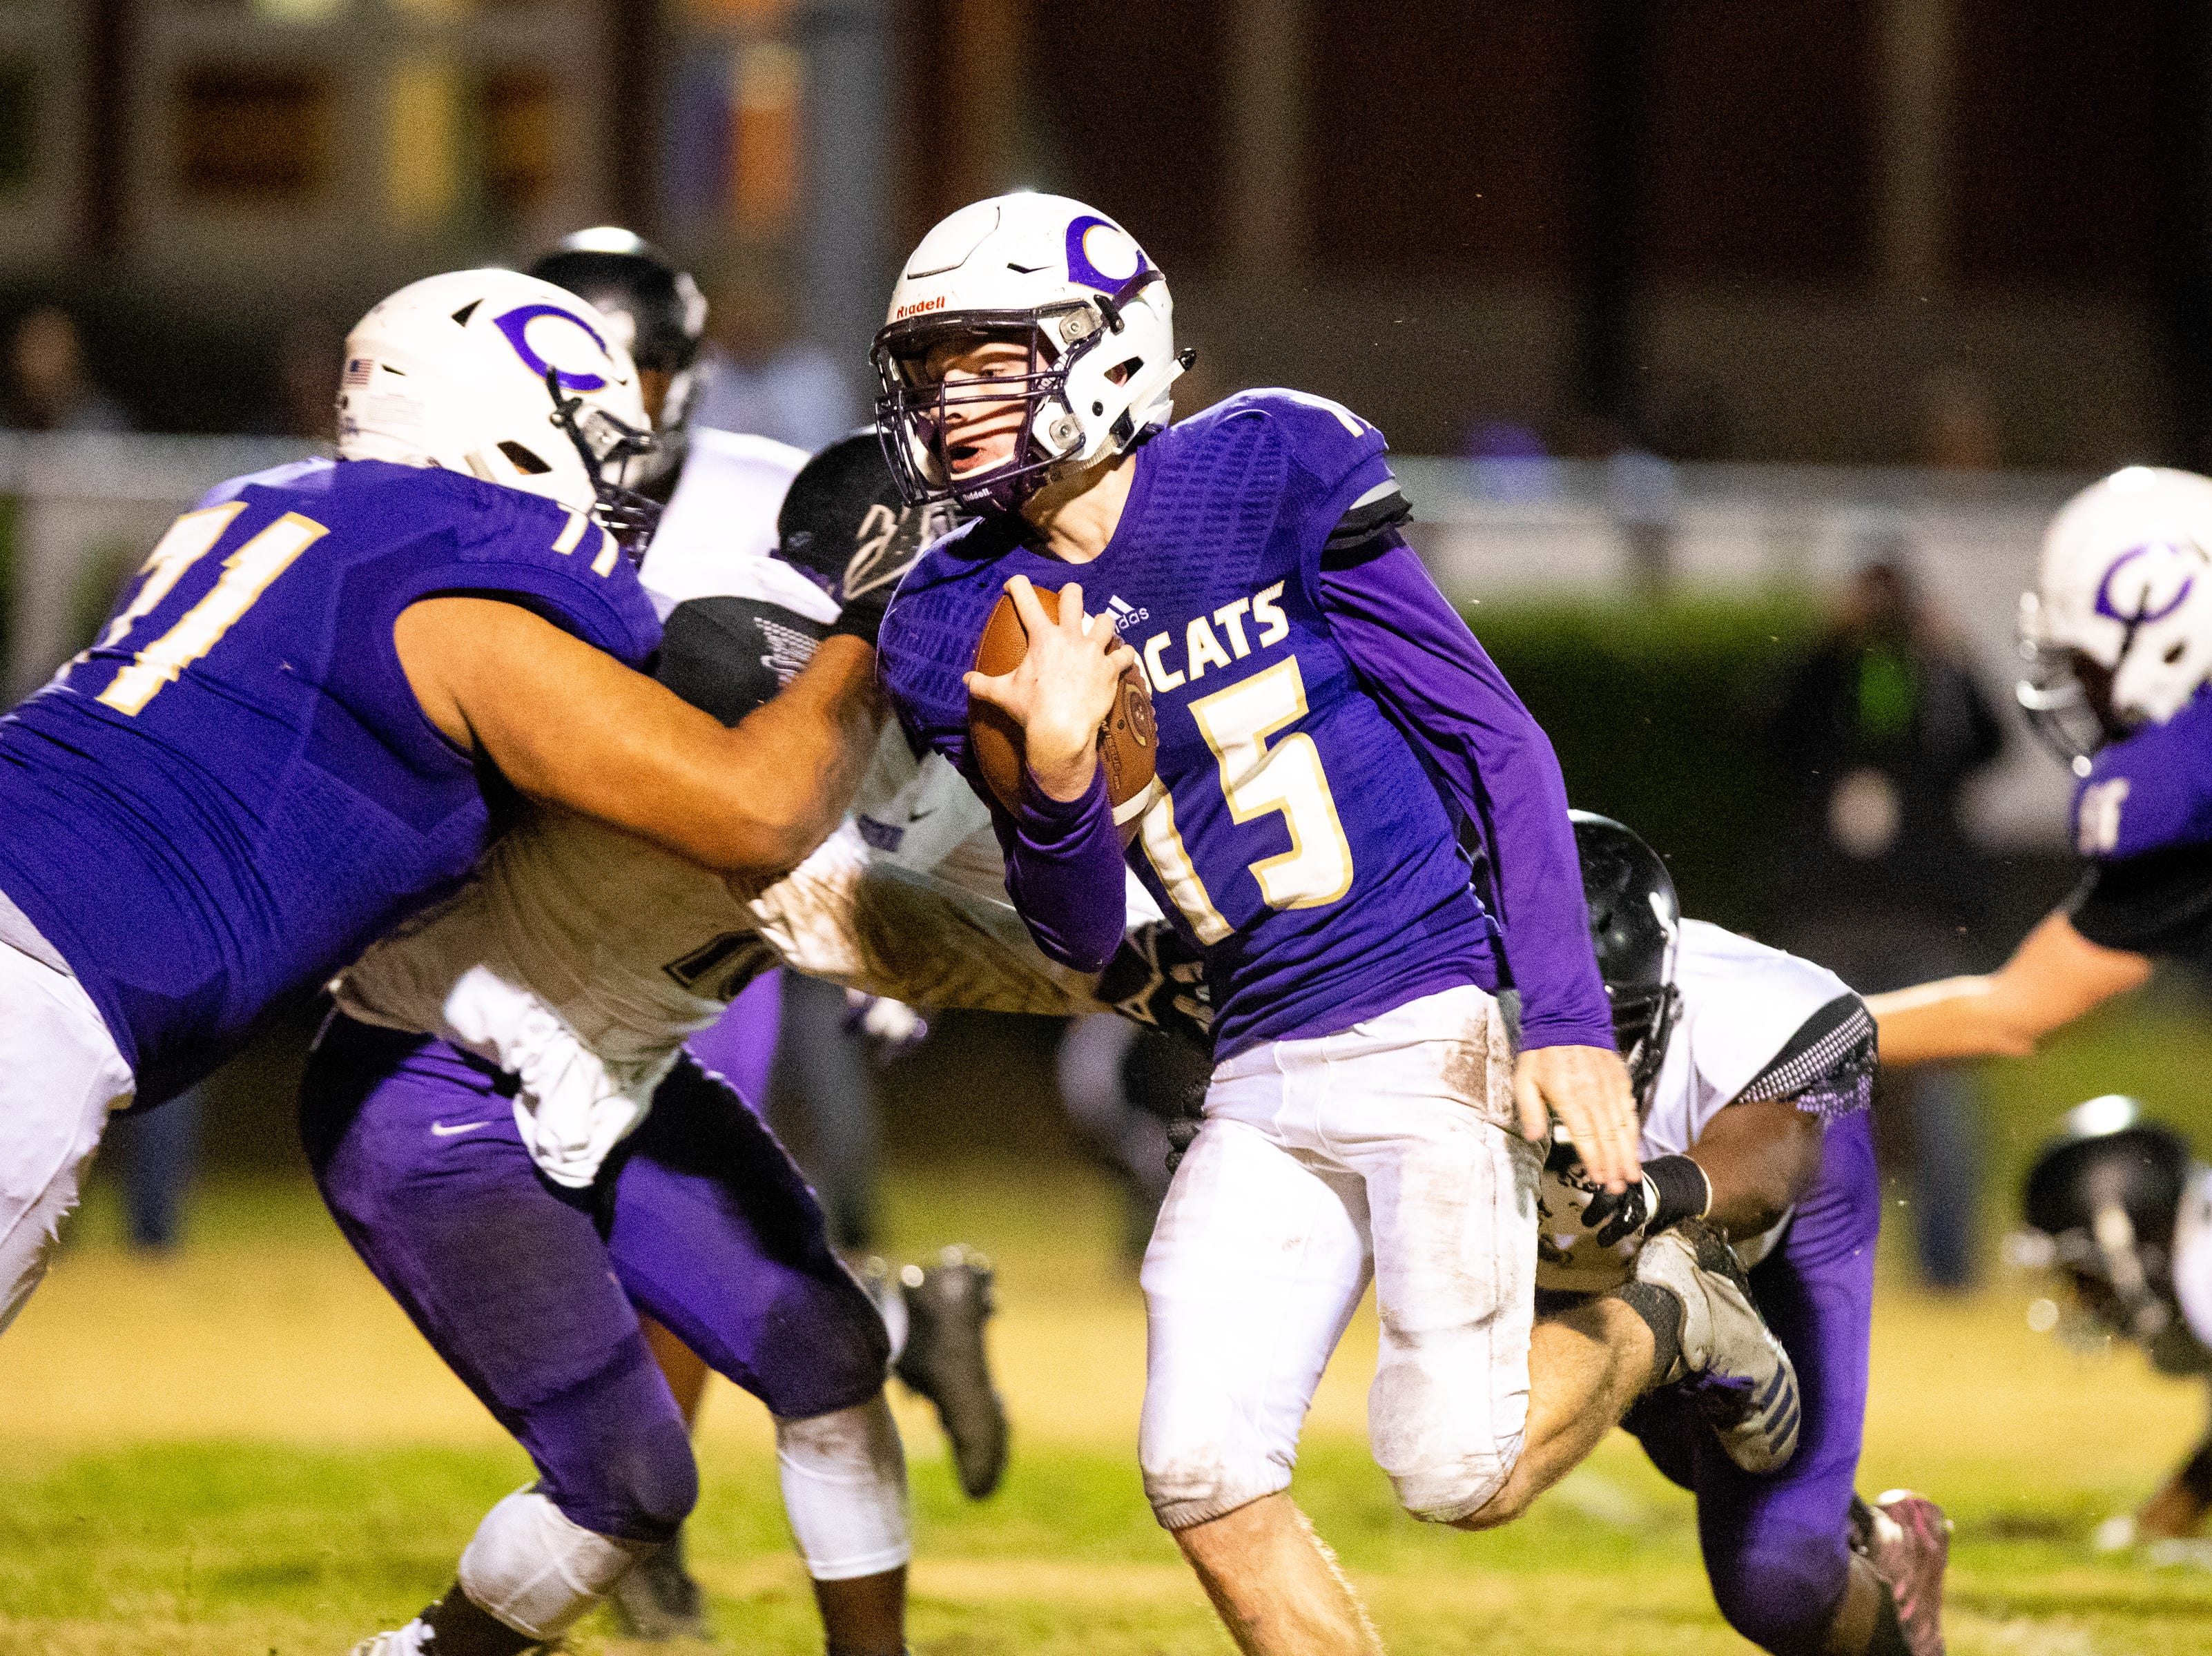 Backup quarterback Colby Cook (15) of Clarksville High runs the ball for a touchdown during the second half at Clarksville High Friday, Nov. 2, 2018, in Clarksville, Tenn.